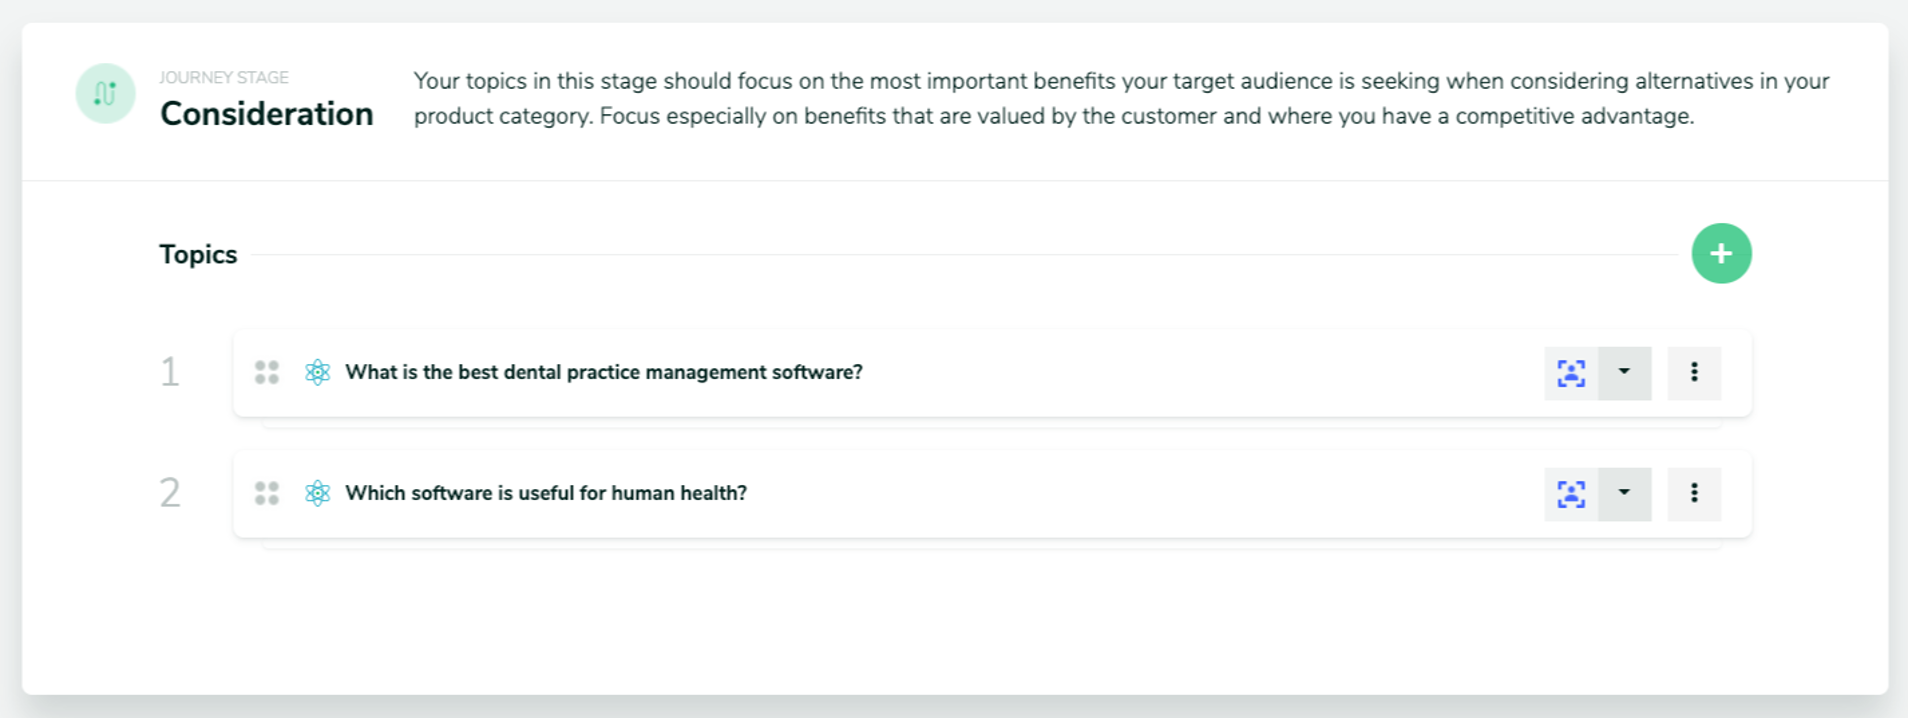 Screen shot showing two content topic suggestions for the consideration stage of the customer journey